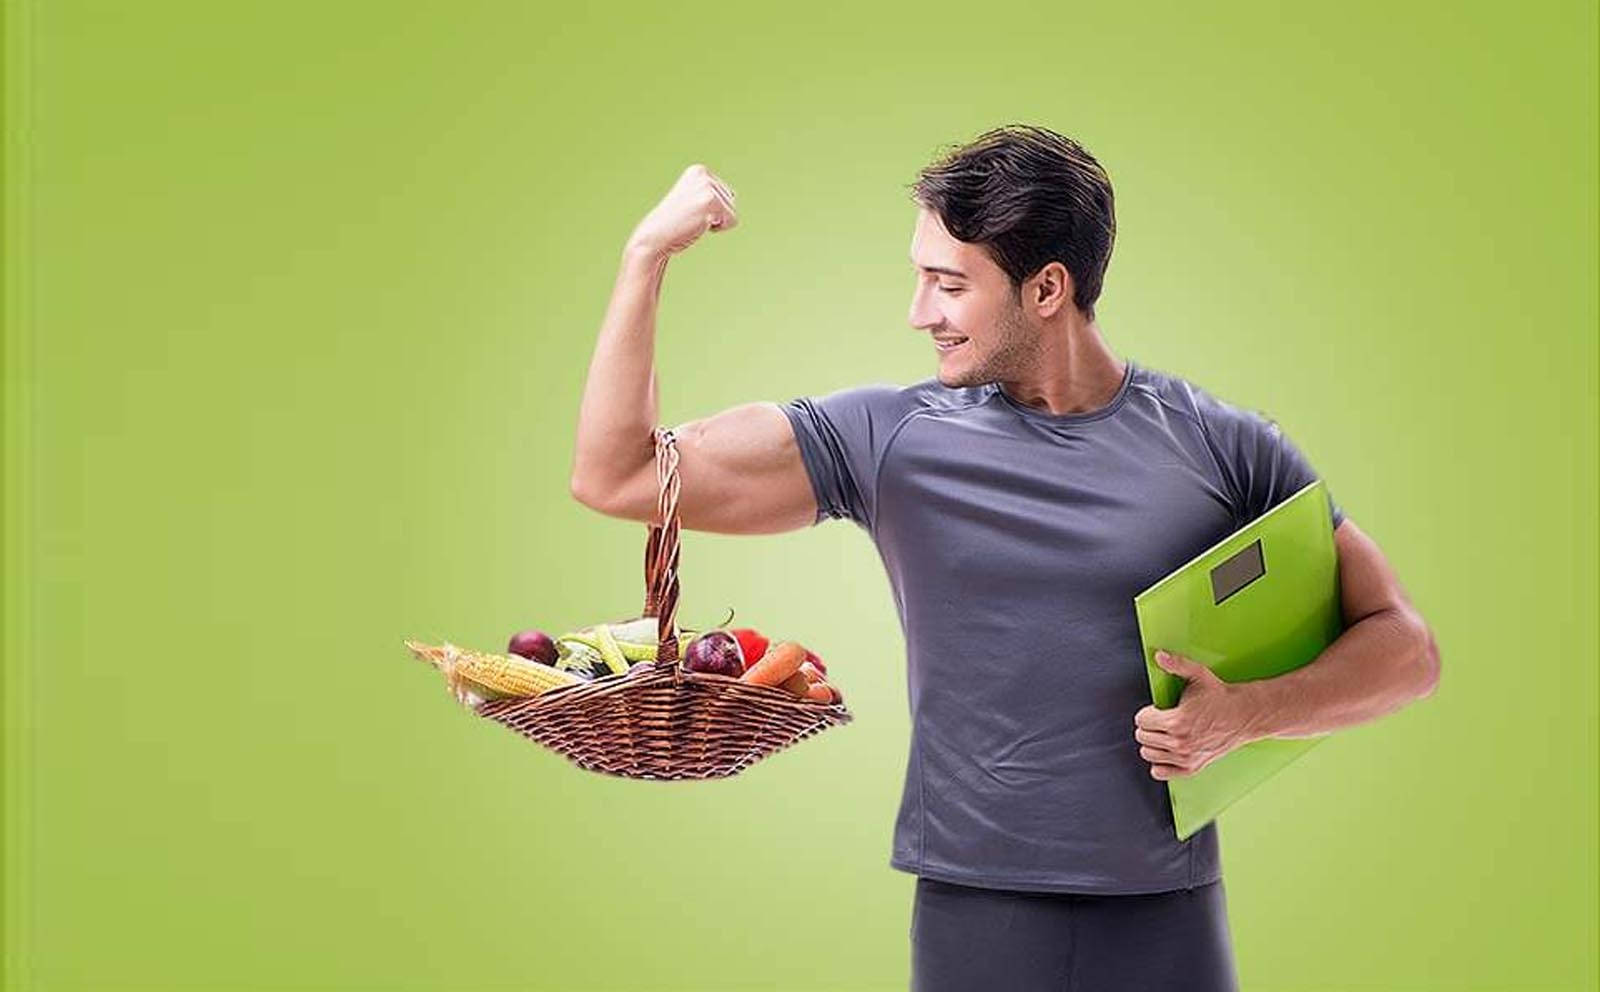 Health and muscle